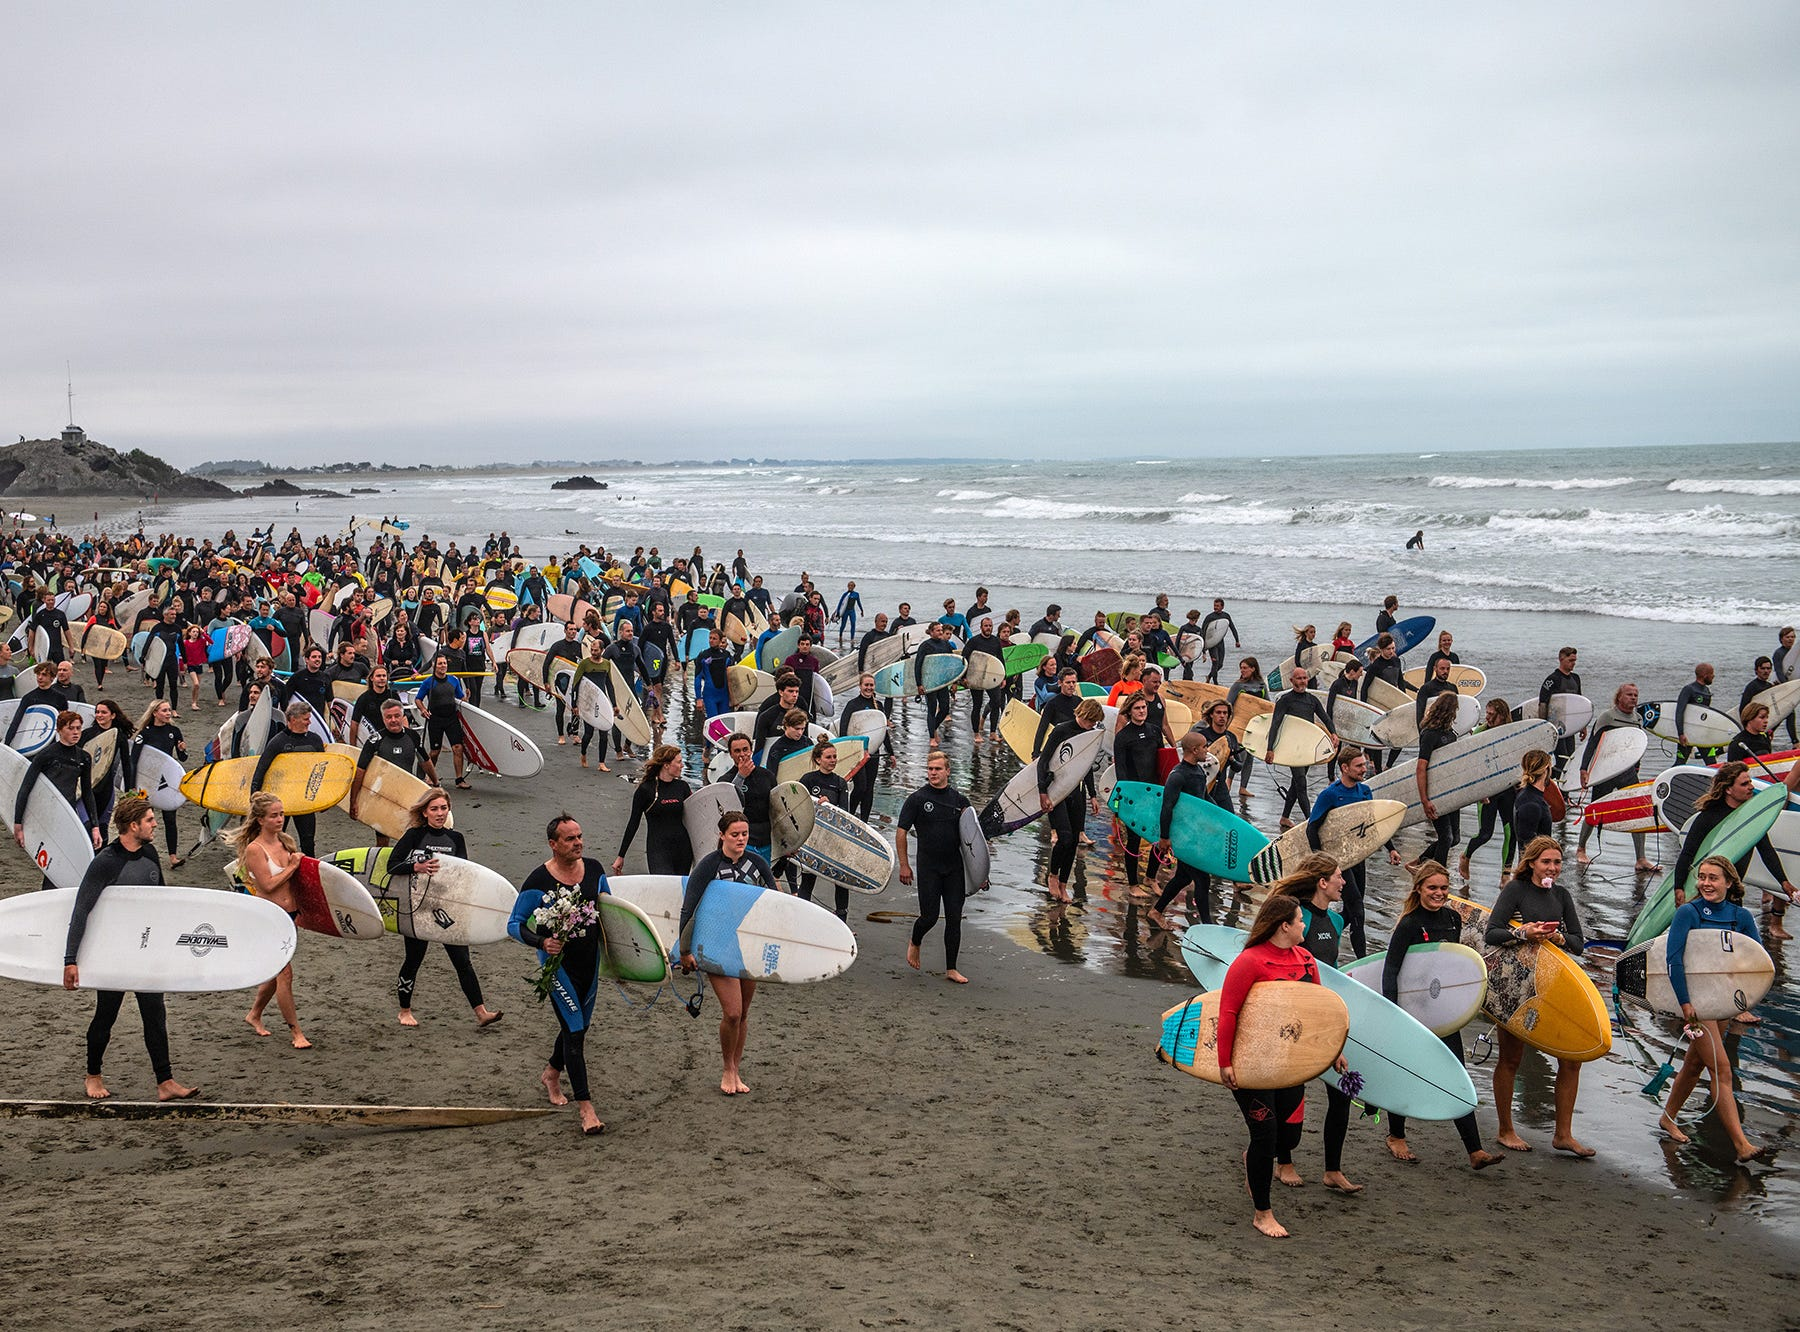 Surfers carry their boards as they walk along a beach before forming a circle at sea to remember victims of the Christchurch mosque attacks, on March 23, 2019 in Christchurch, New Zealand.